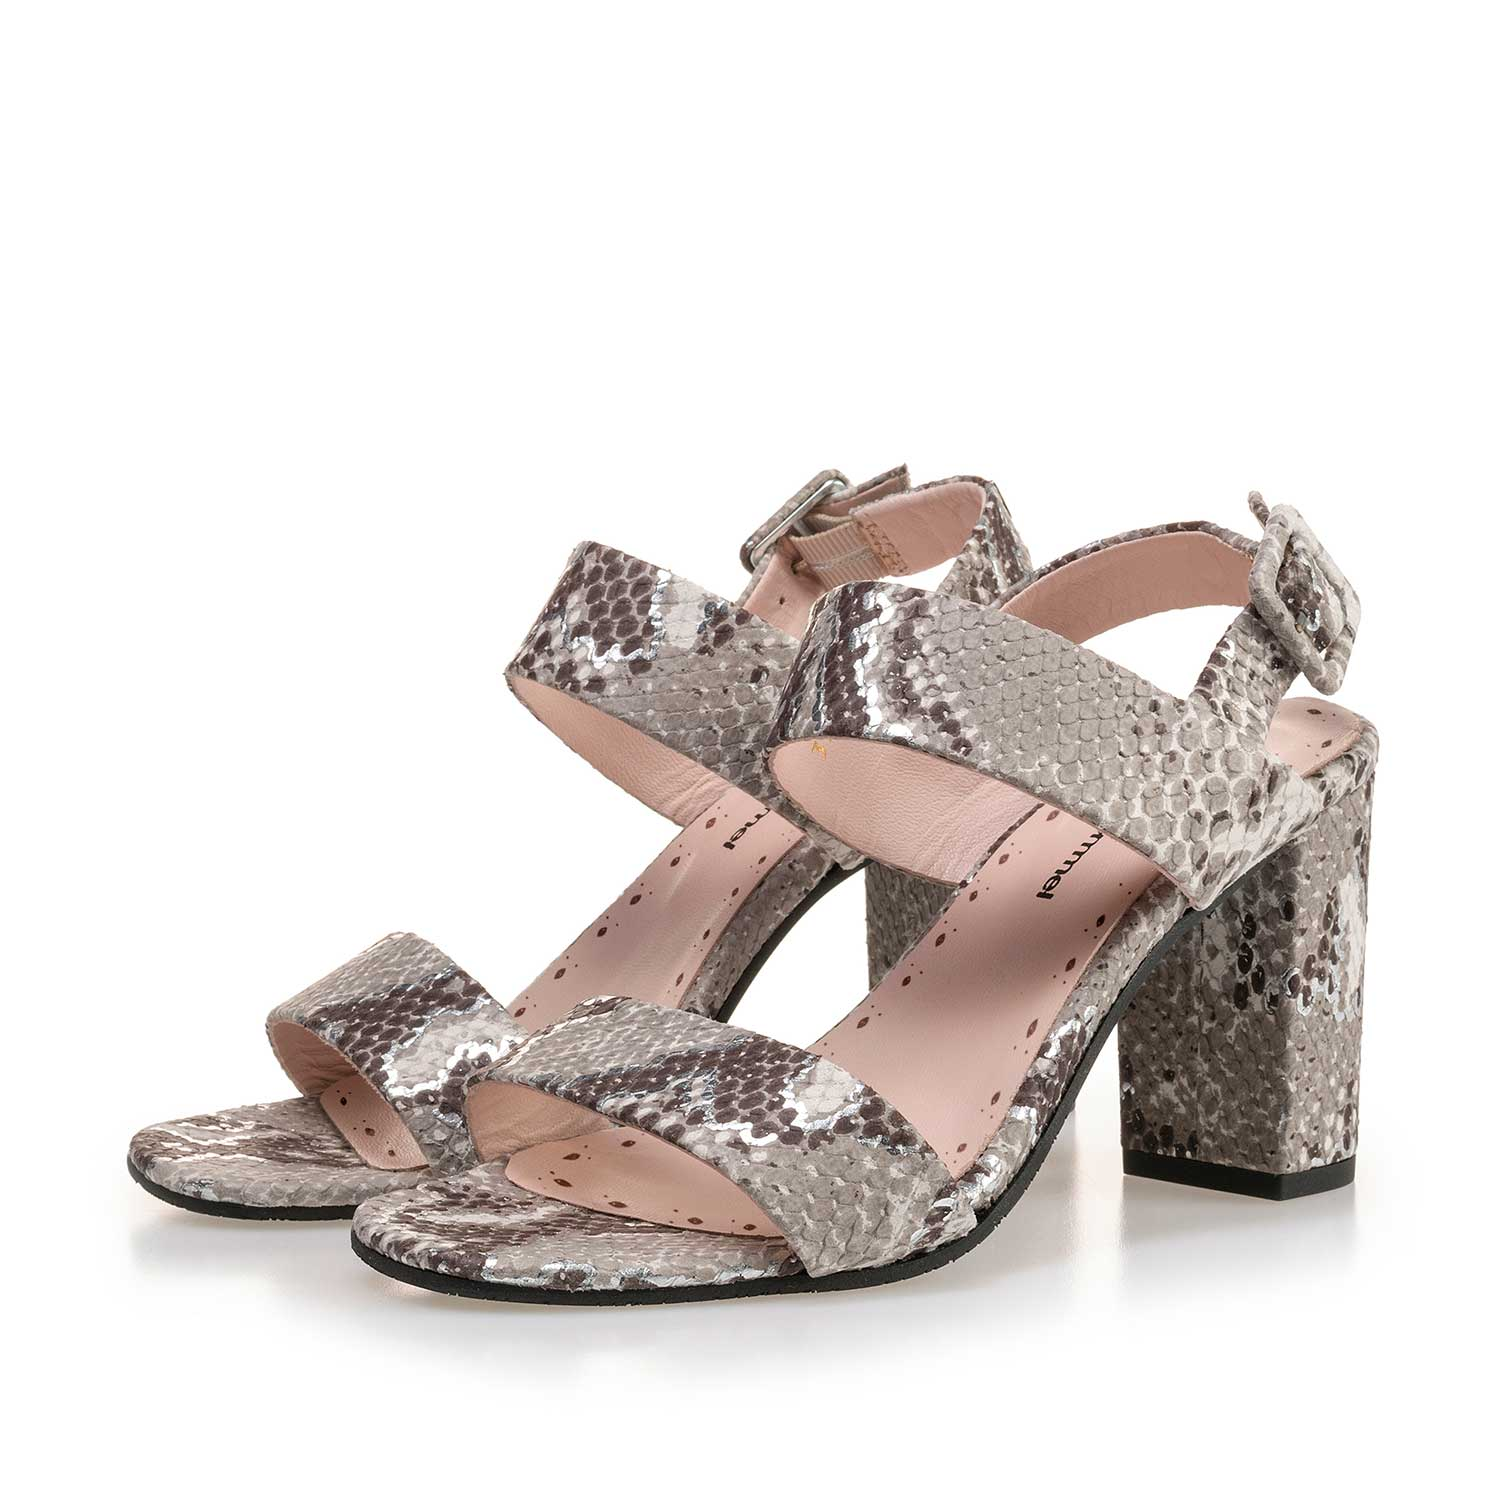 85228/01 - Taupe-coloured leather sandal with snake print